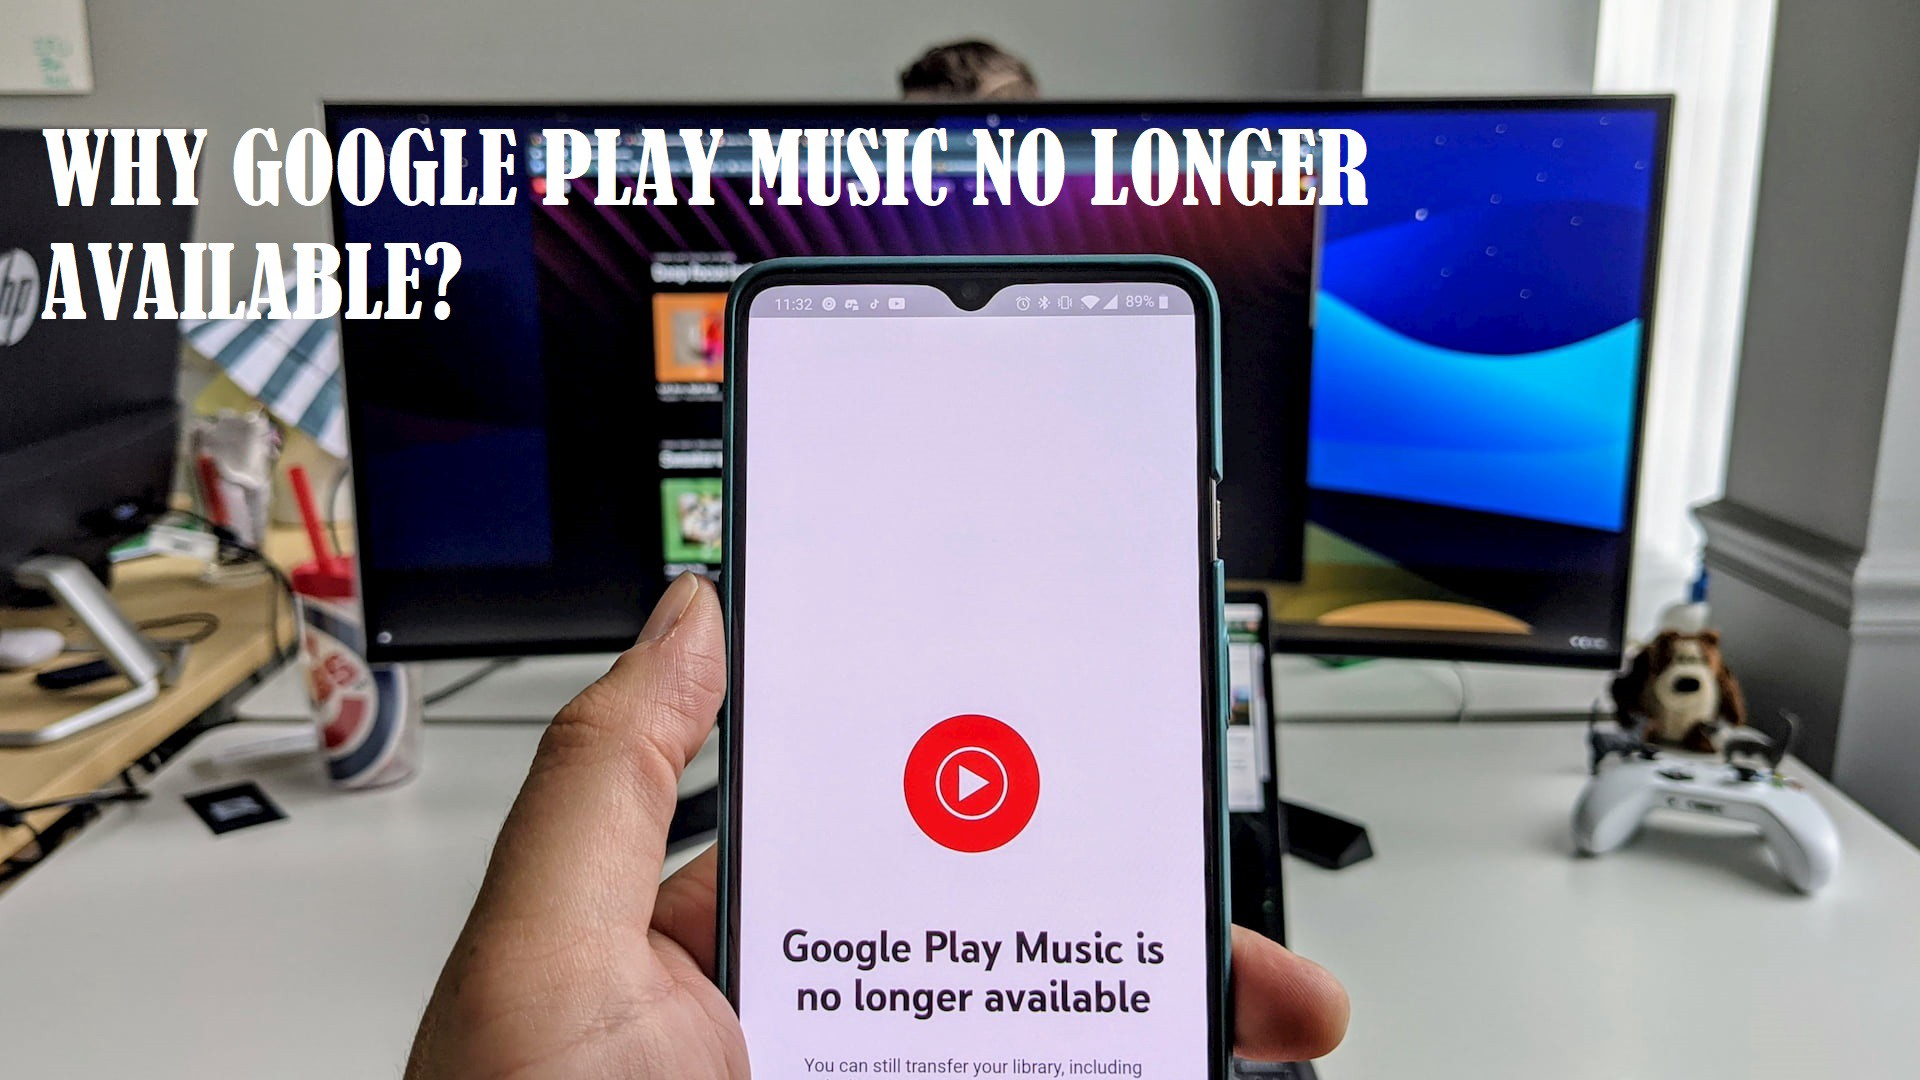 Google Play Music no longer available